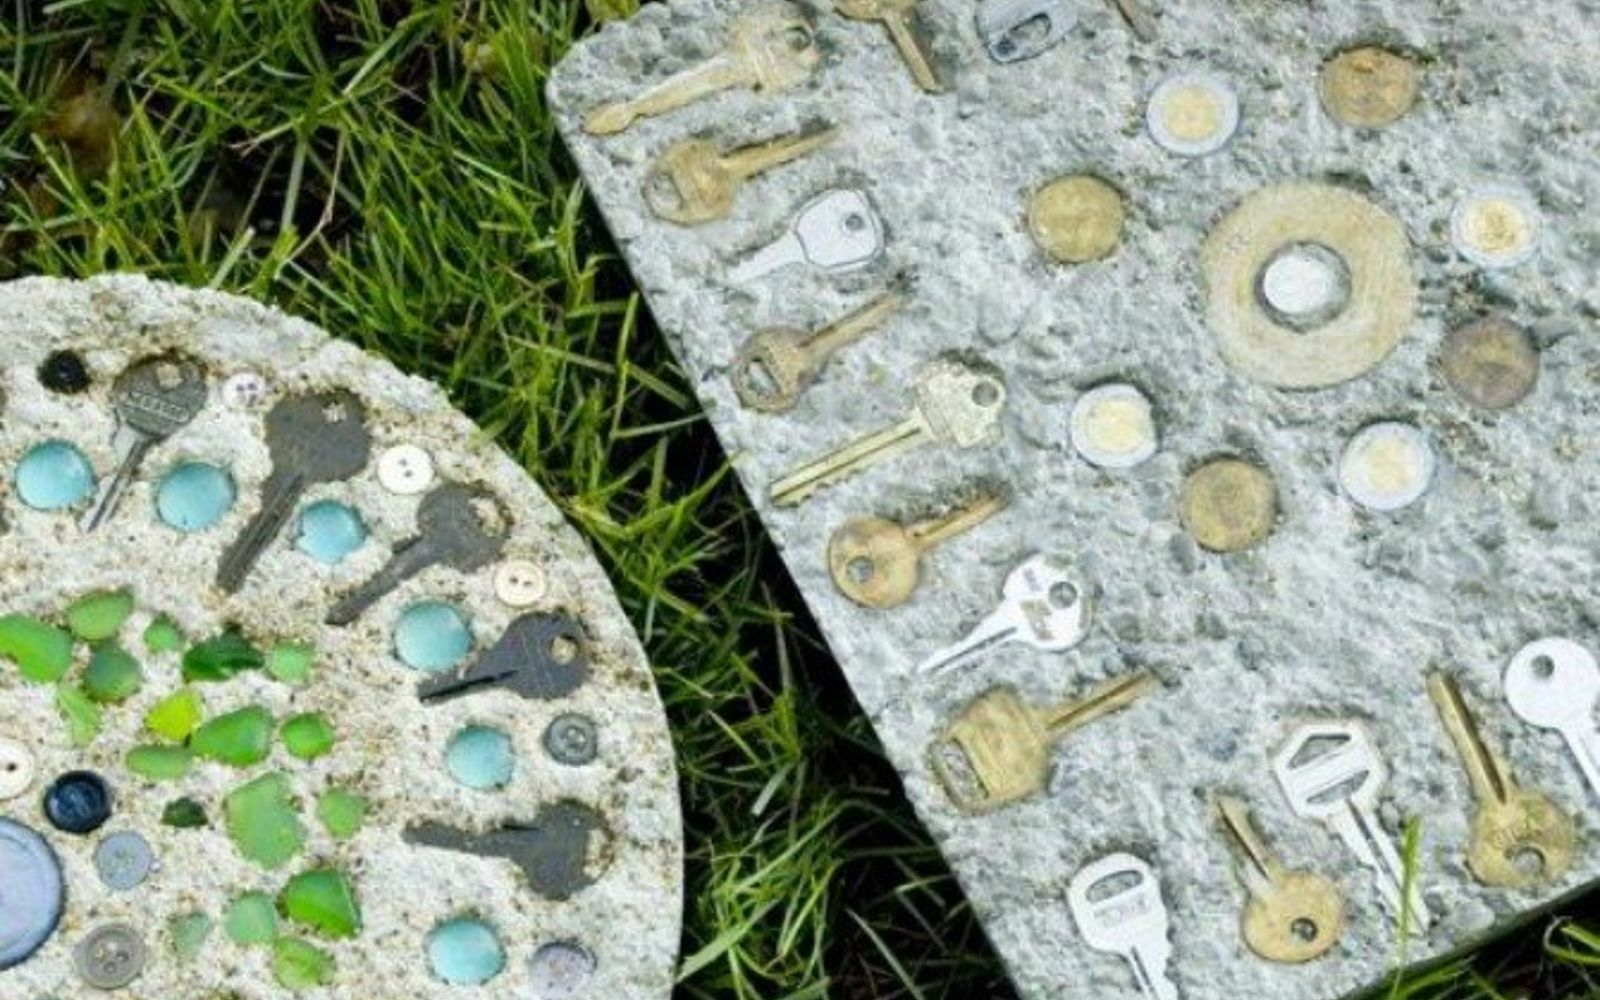 s 17 stunning ideas for your dollar store gems, crafts, gardening, Decorate DIY stepping stones for the yard